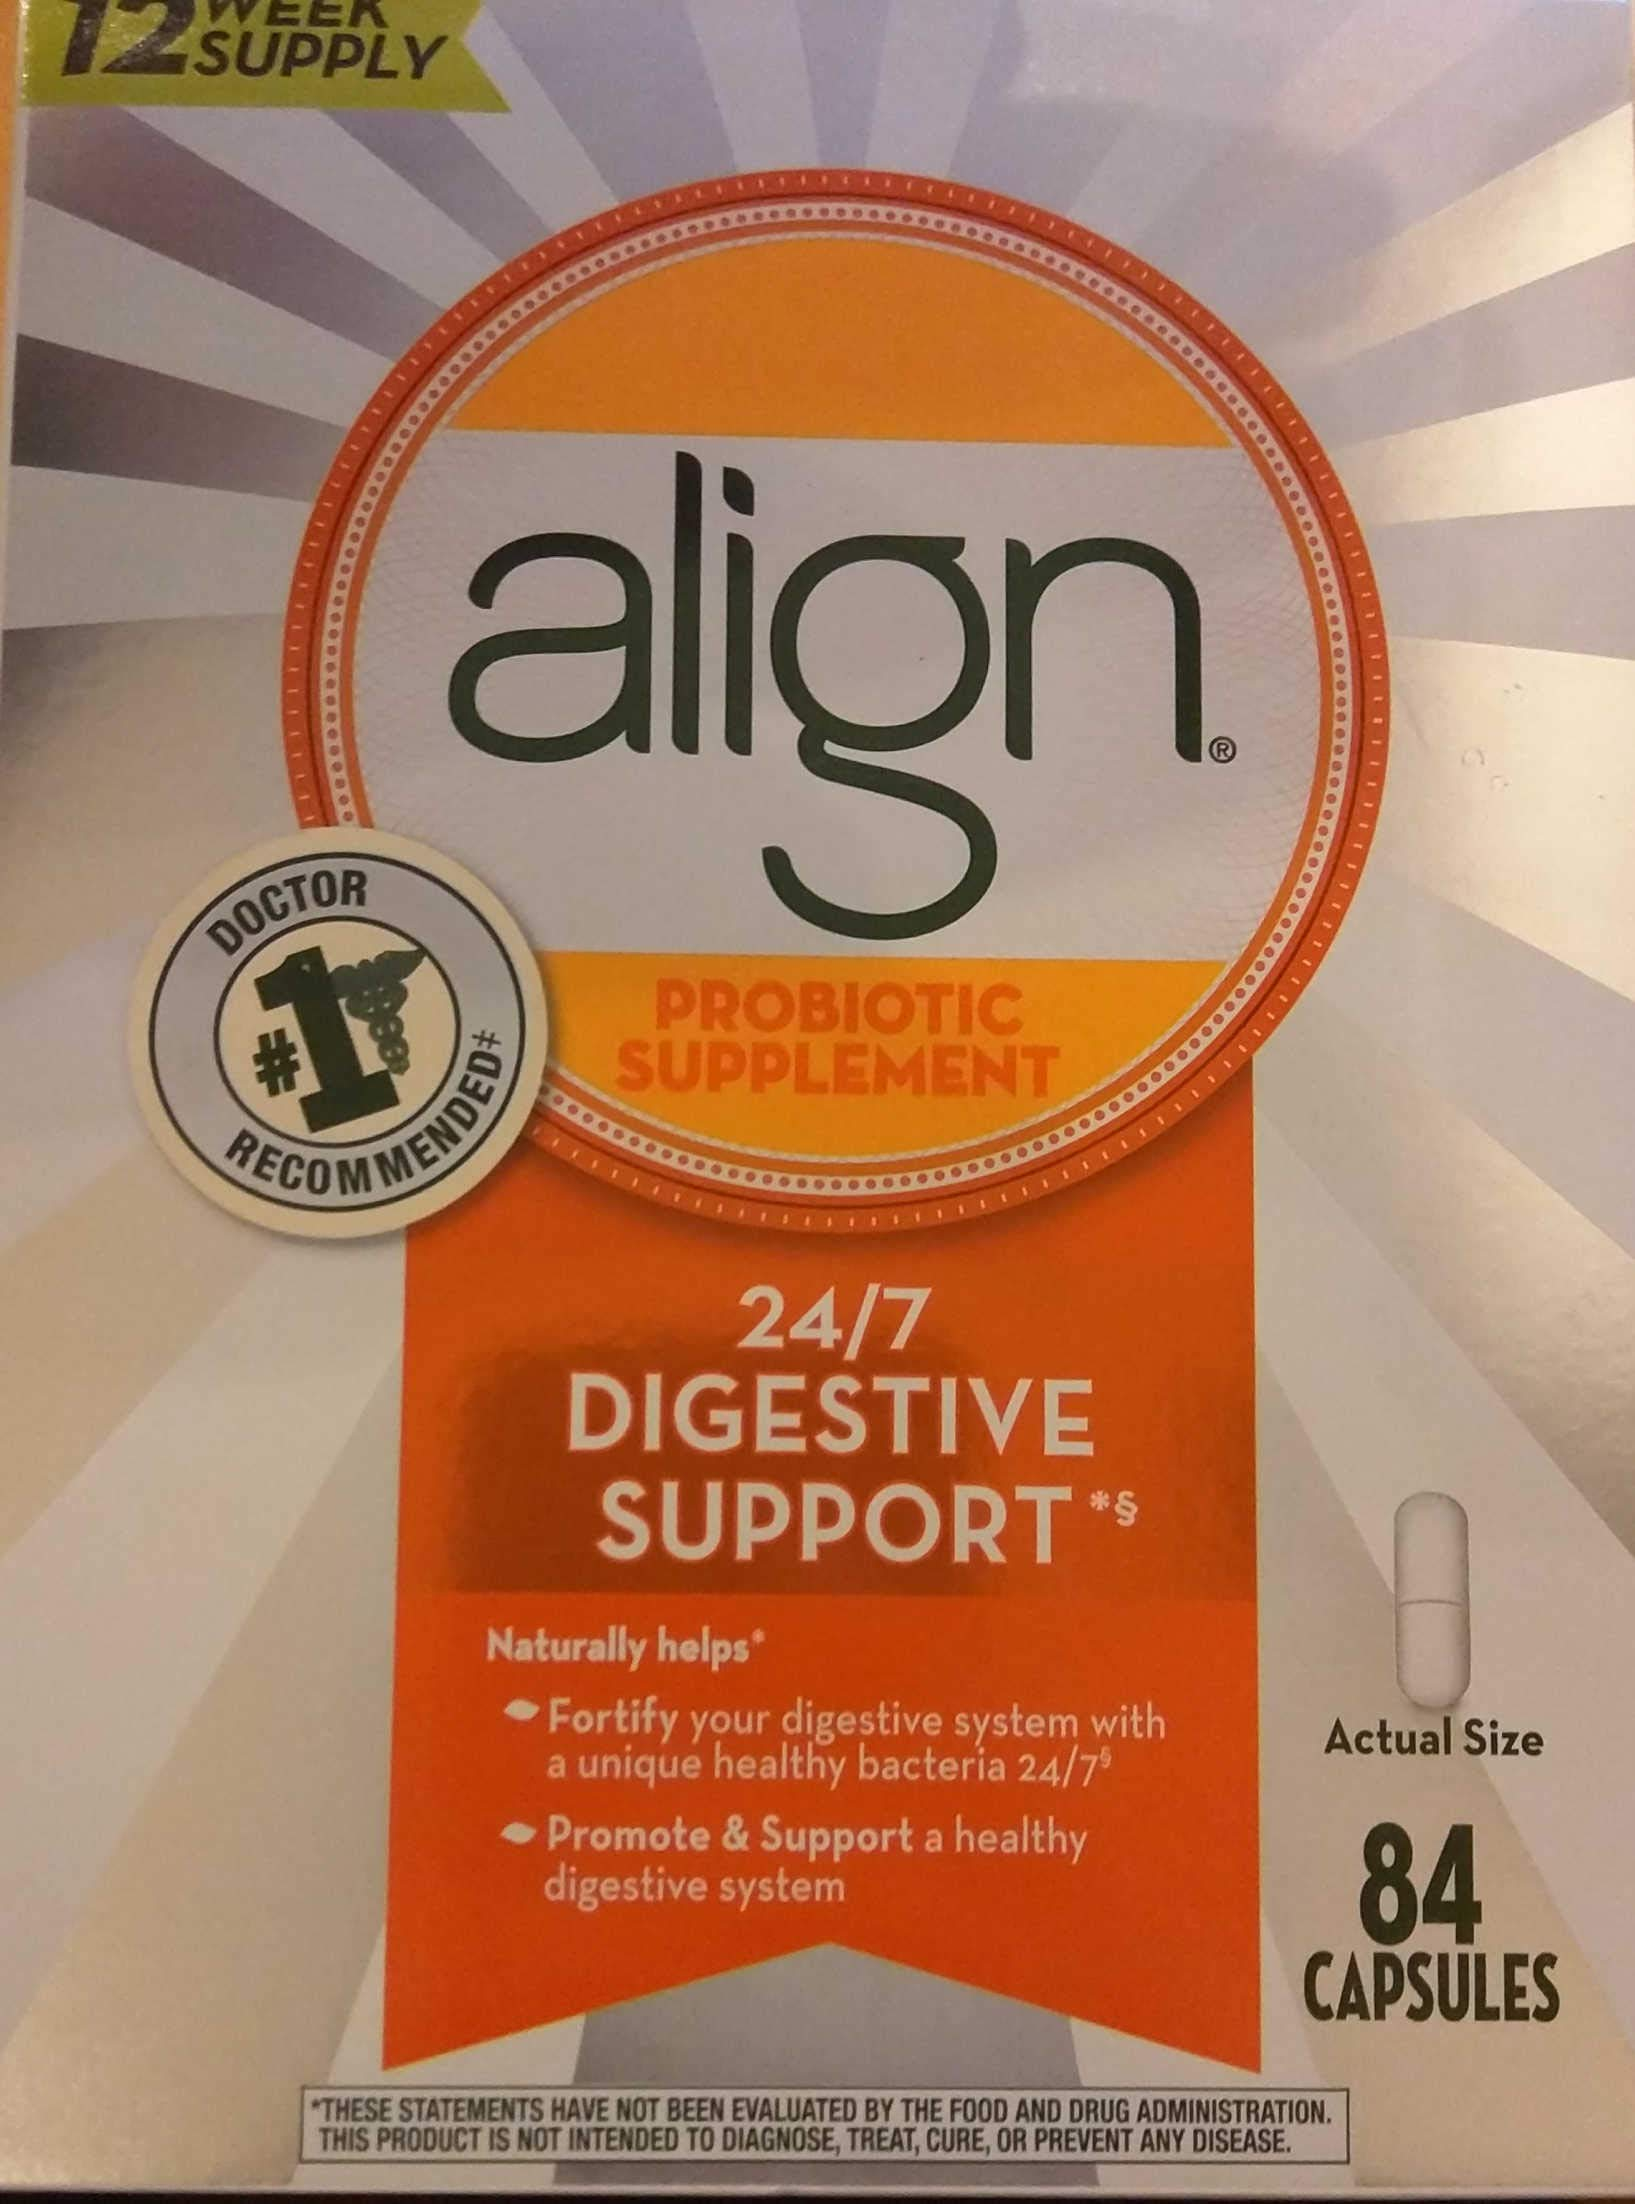 Align Daily Probiotic Supplement Capsules, 84 Count by Align